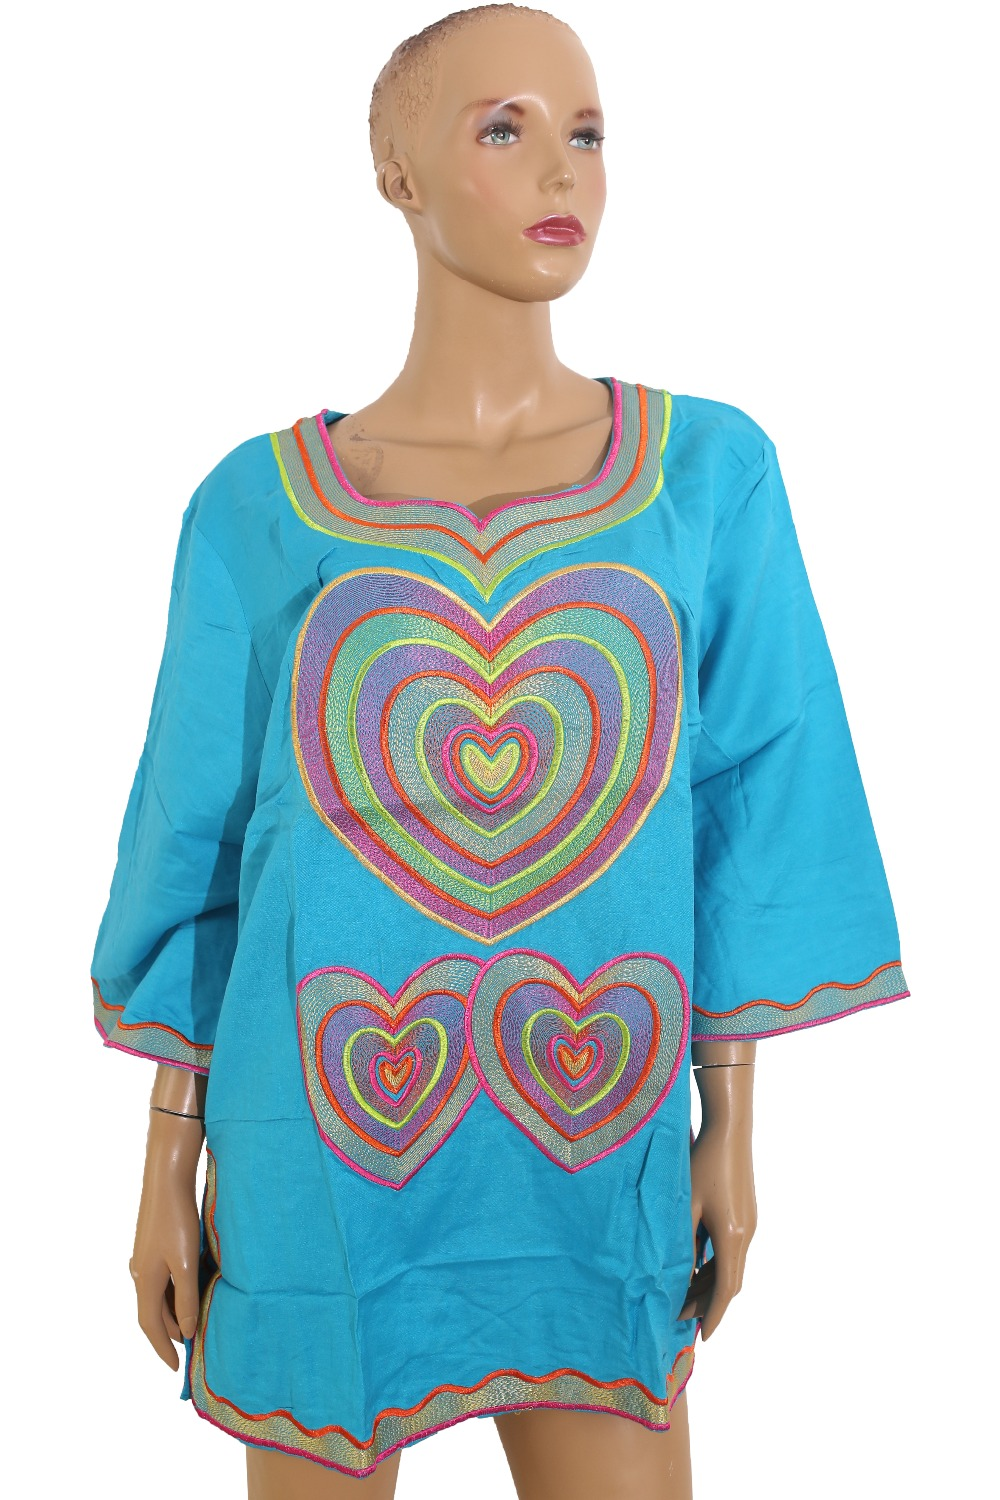 H D 2018 African dashiki for women shirts Cotton linen woman tops  Traditional Africa style clothing bazin riche africain femme 58b766745c7b